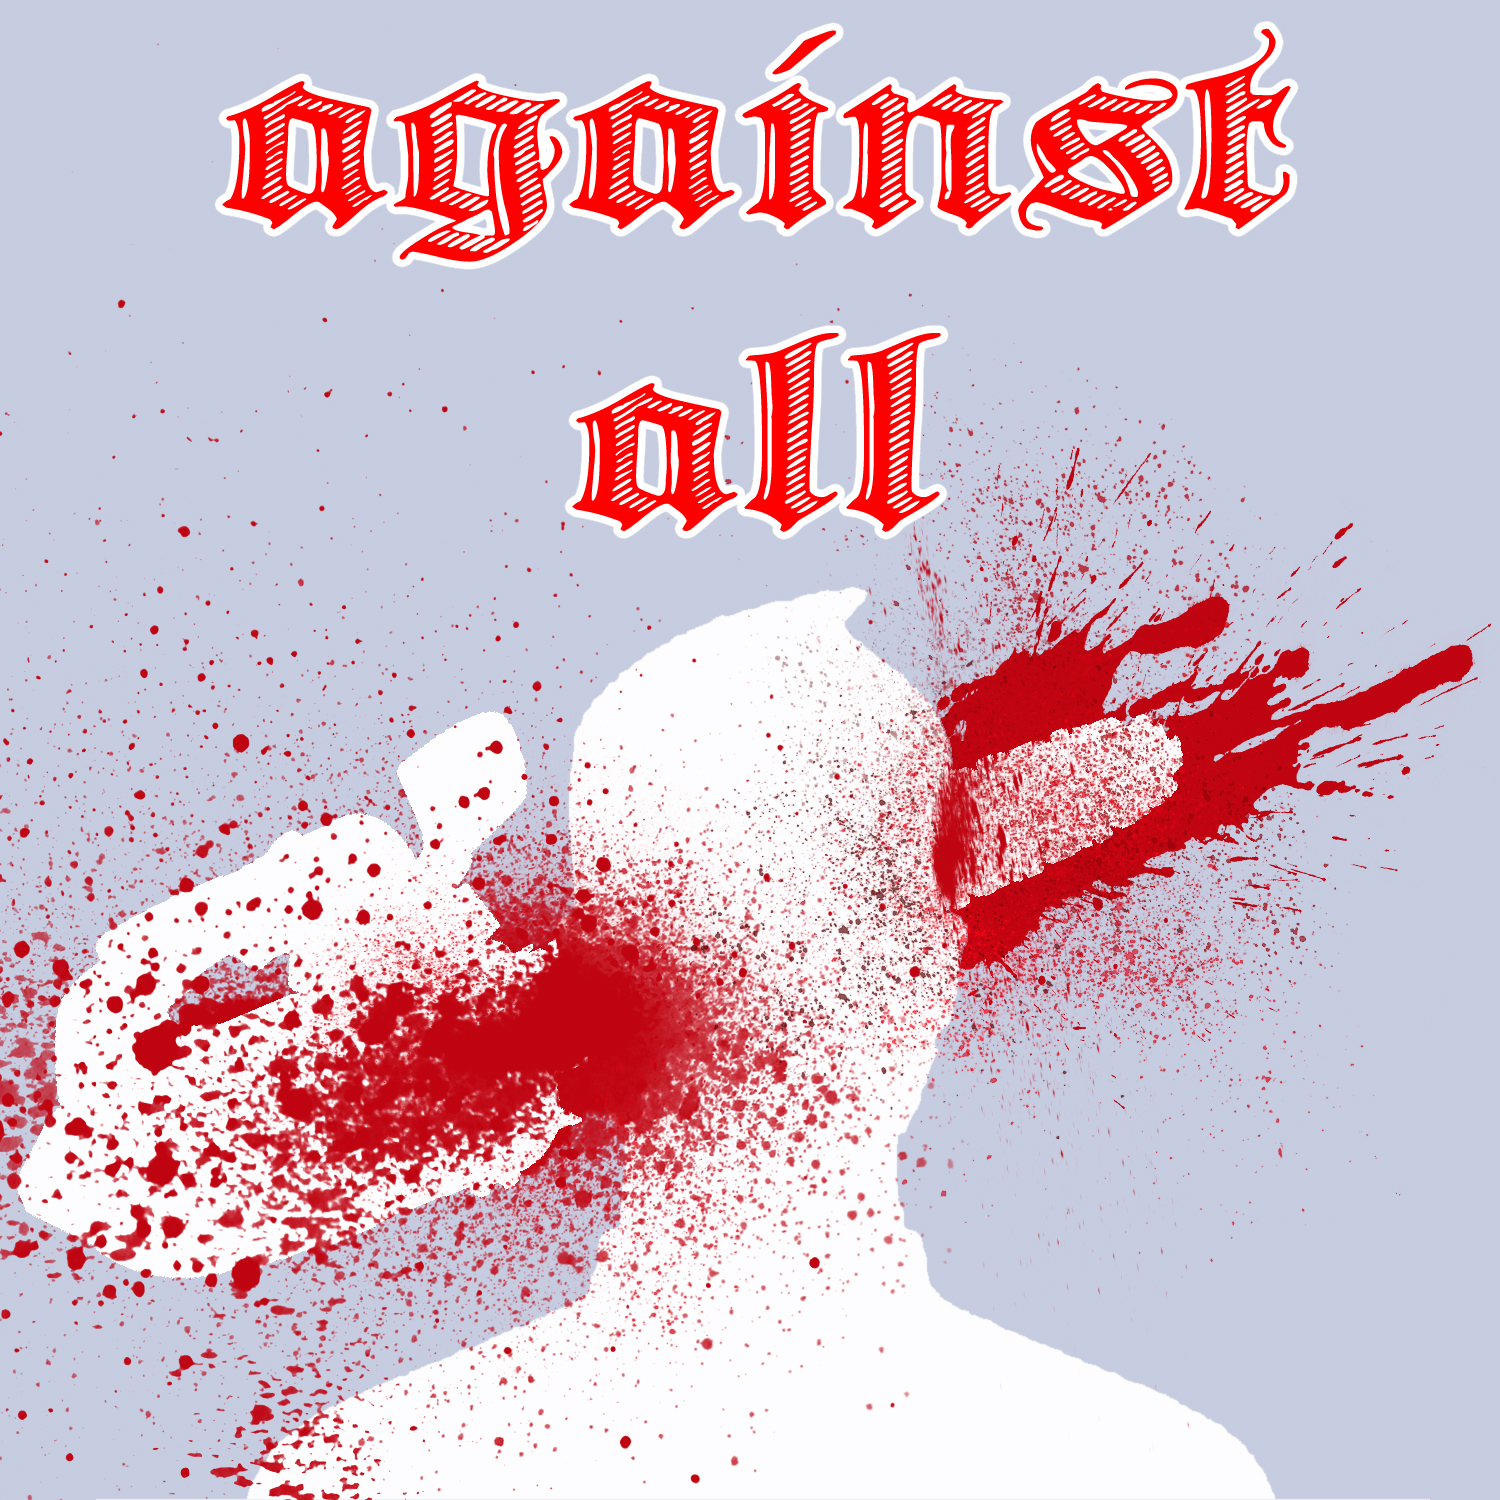 TIENDA AGAINST ALL